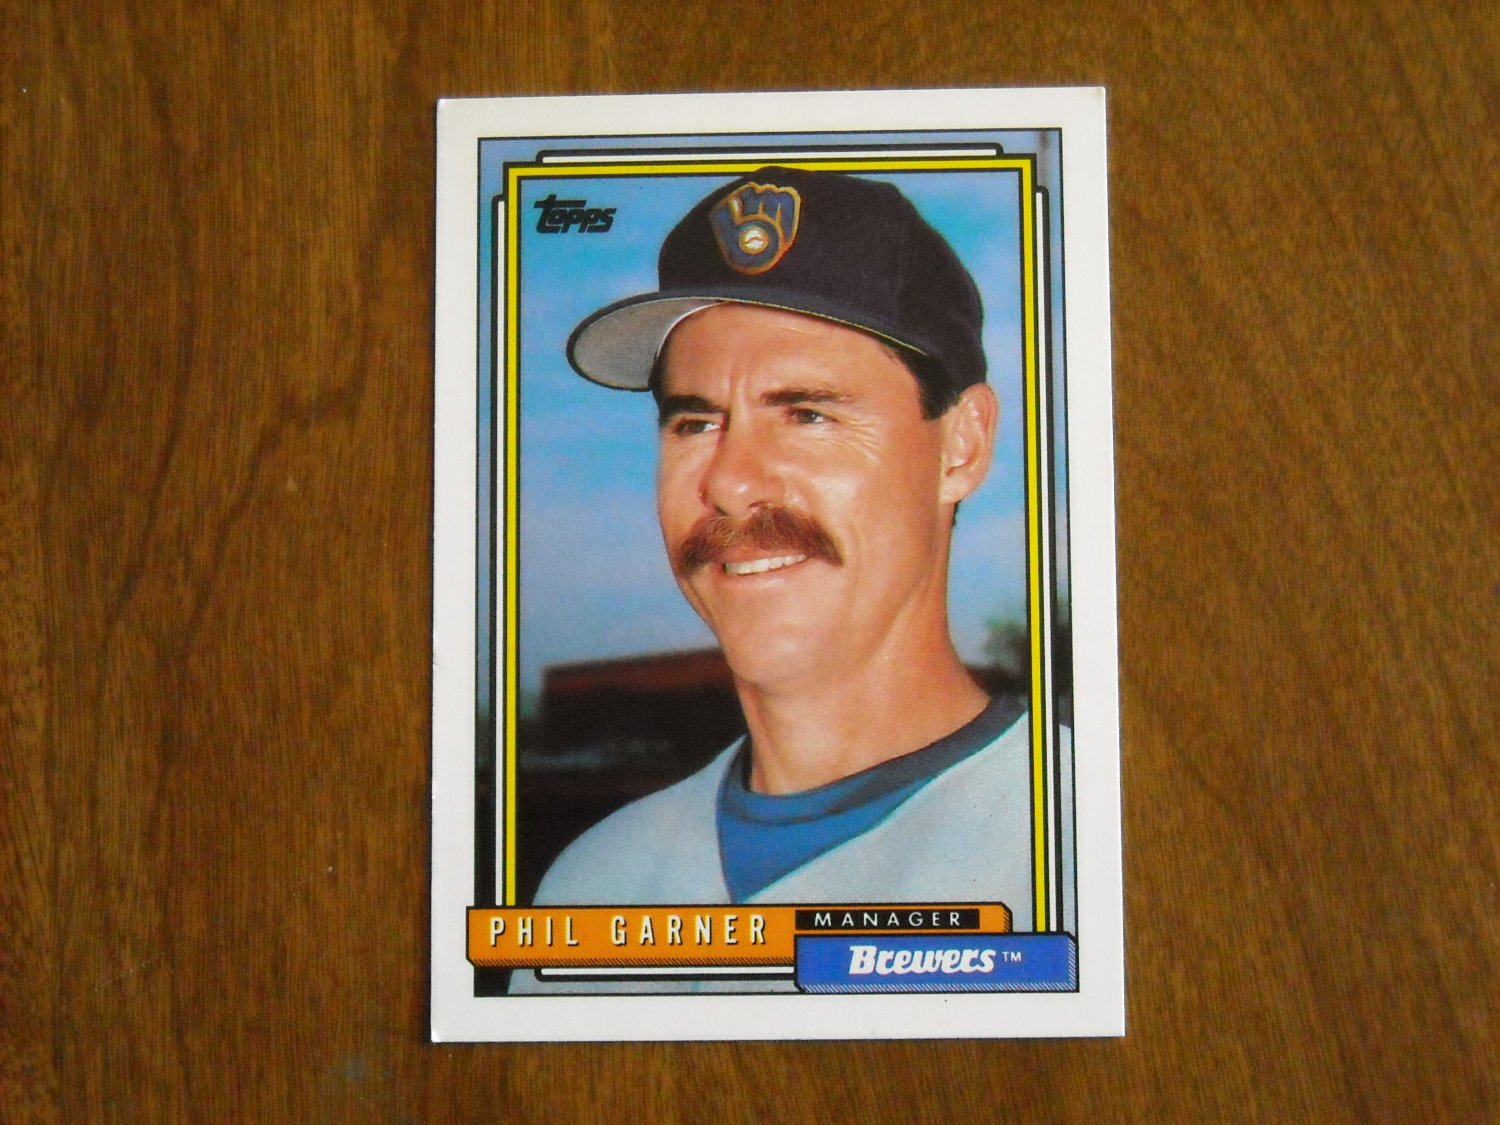 Phil Garner Milwaukee Brewers Manager 291 1992 Topps